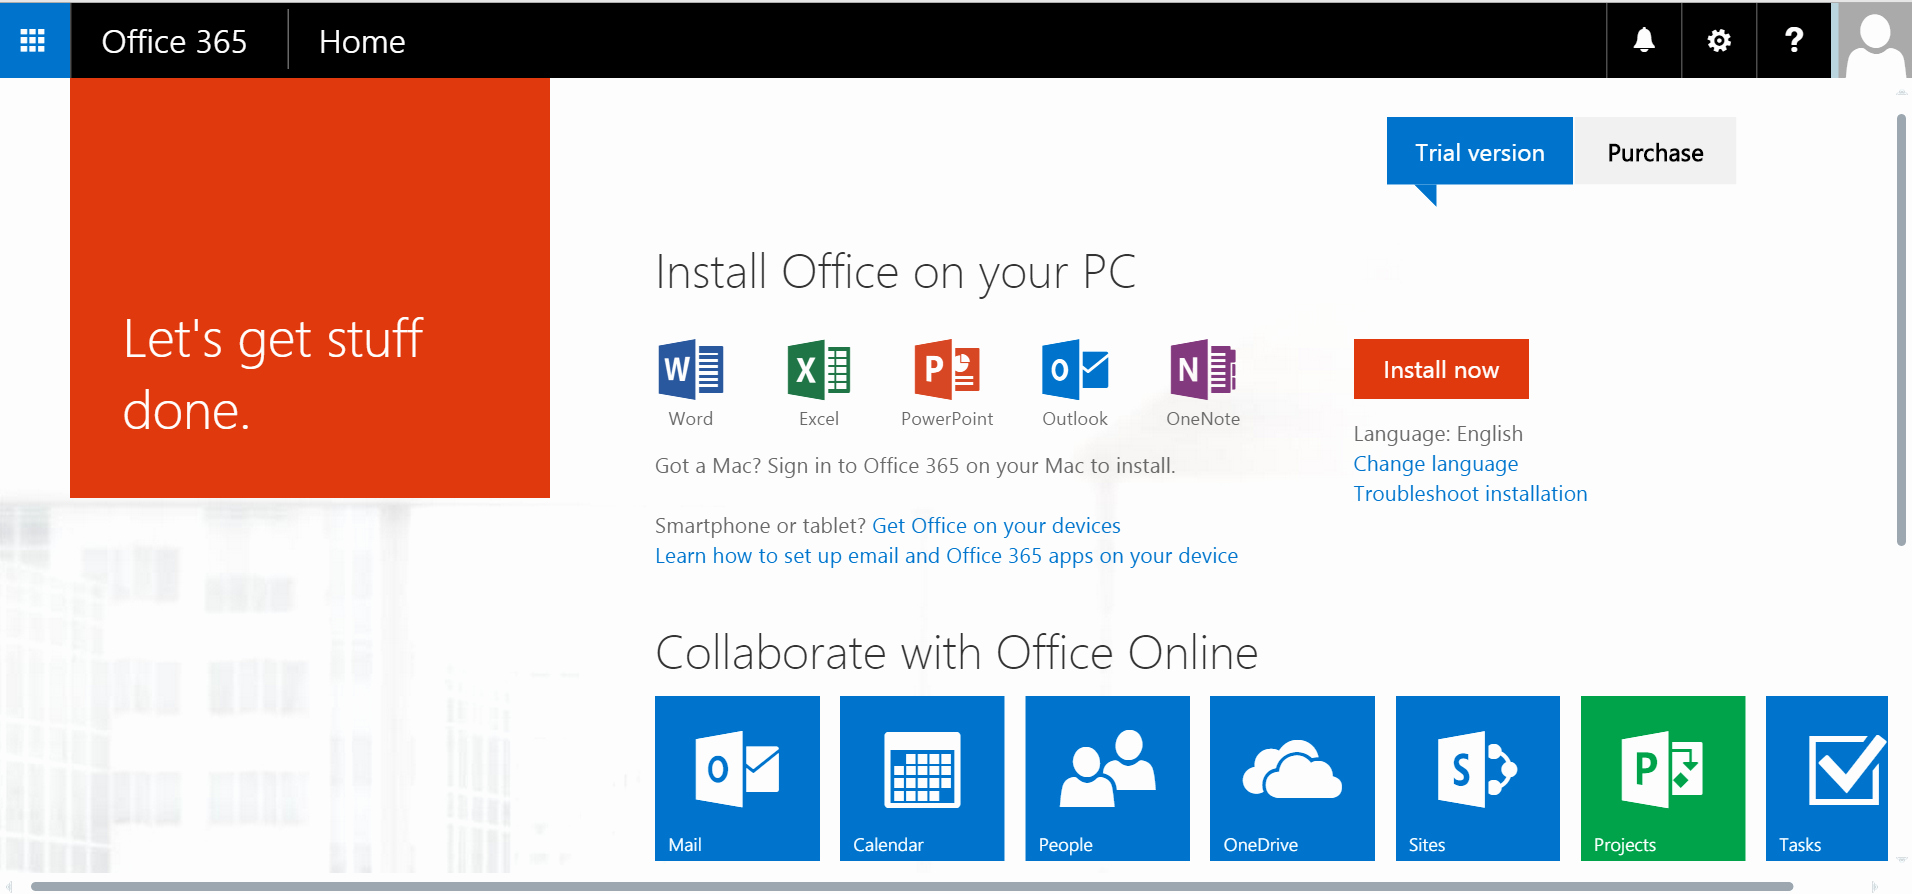 Www.https://portal.office.com Awesome Sharepoint Online Set A Start Page to Your Office 365